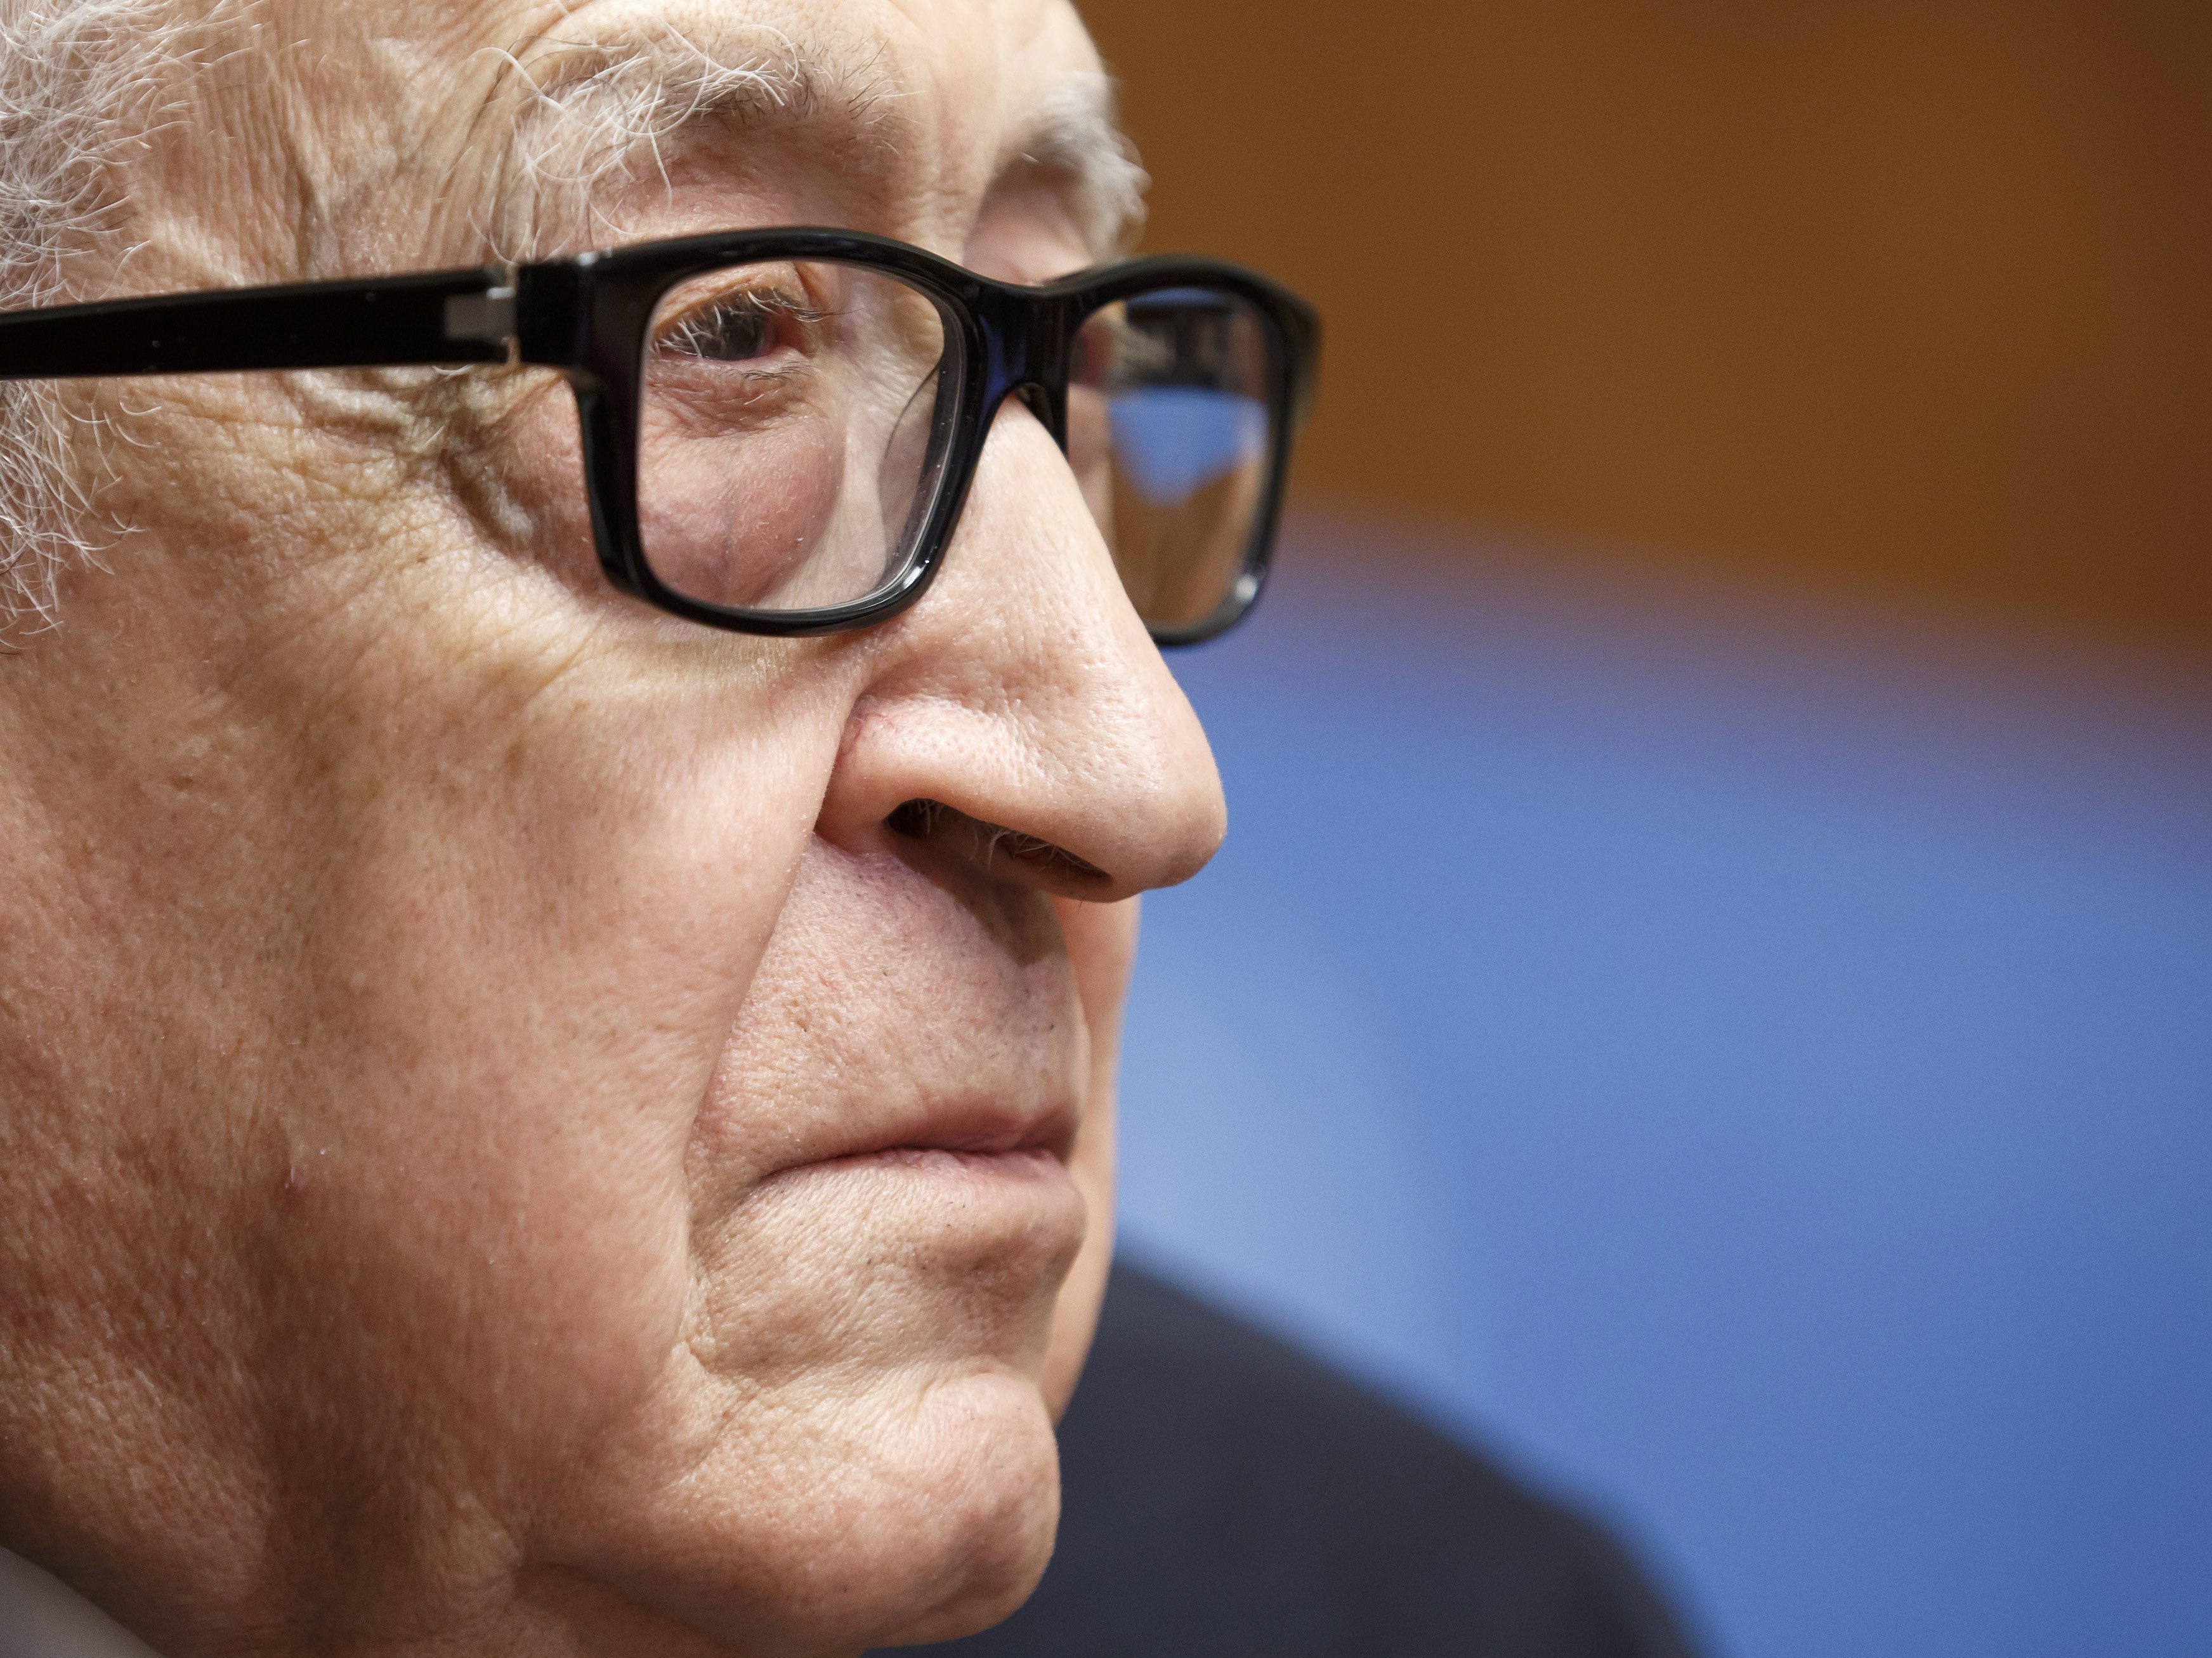 UN-Arab League Special Envoy to Syria Lakhdar Brahimi is pictured during a news conference in Geneva on Saturday.